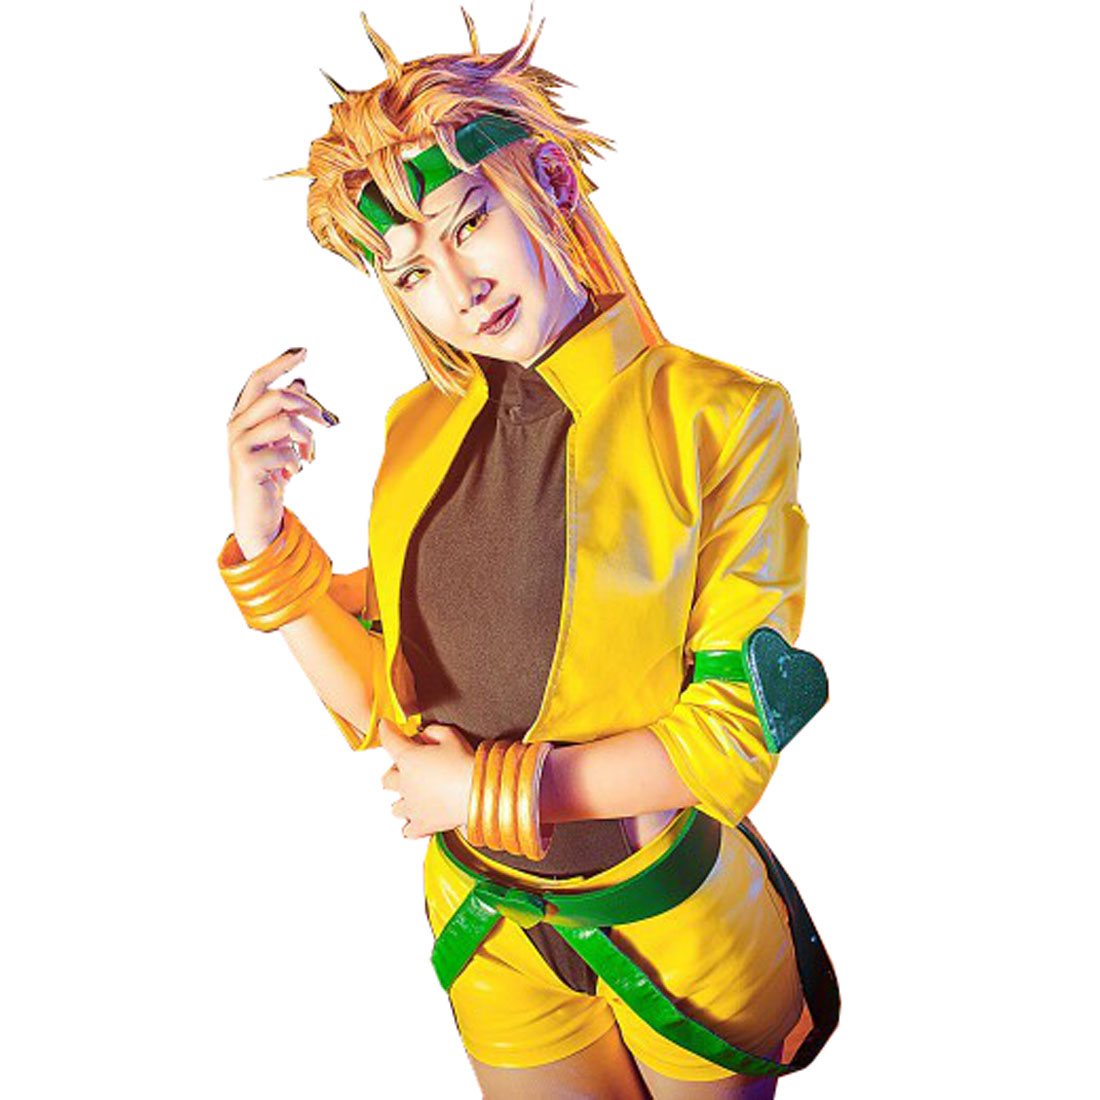 2019 JoJo's Bizarre Adventure Movie Dio Brando Cosplay Costume Women Version